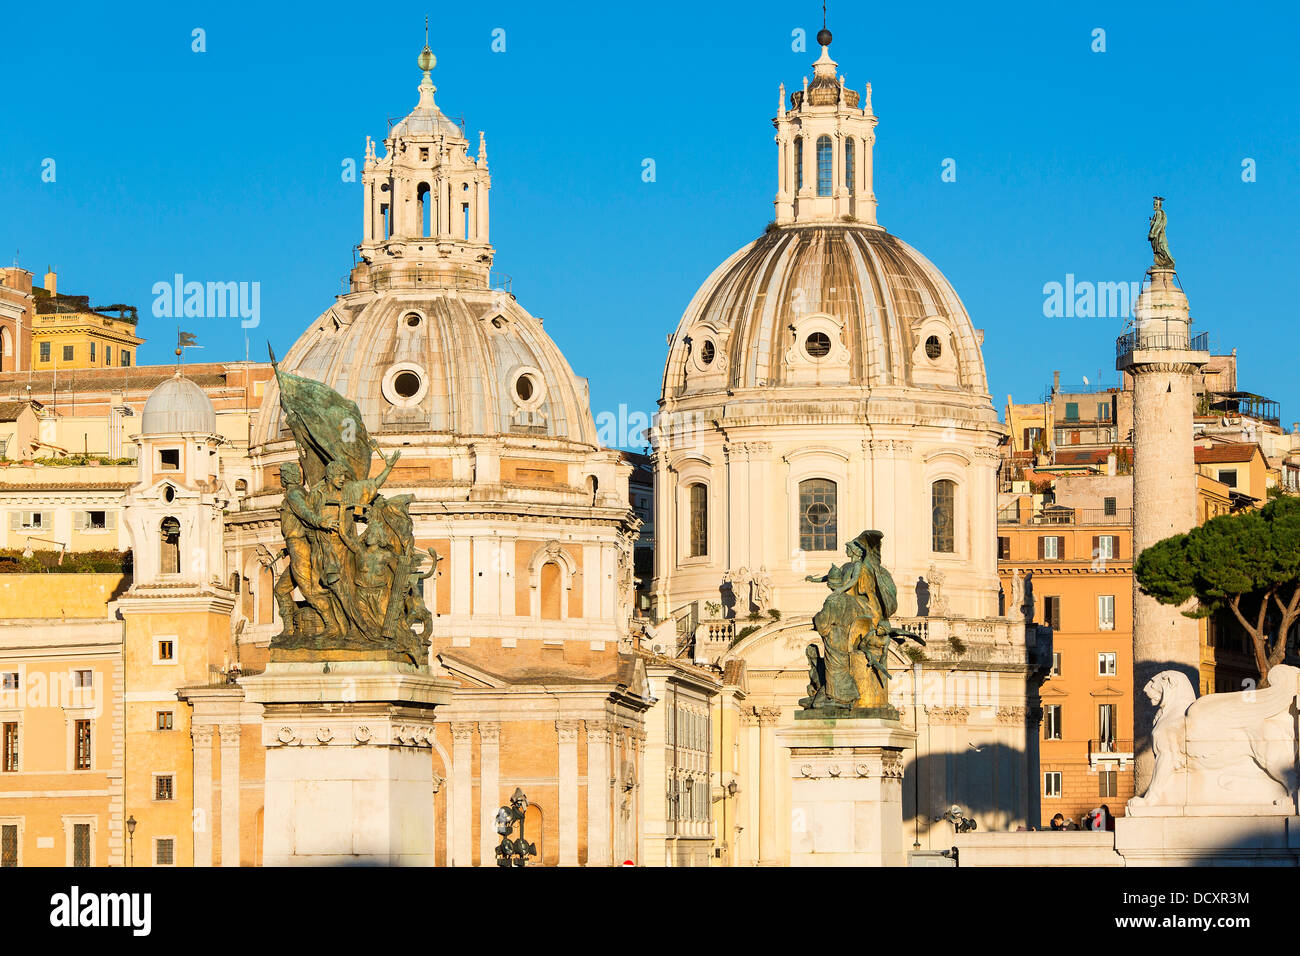 Trajan's Column and church in Imperial Forums - Stock Image